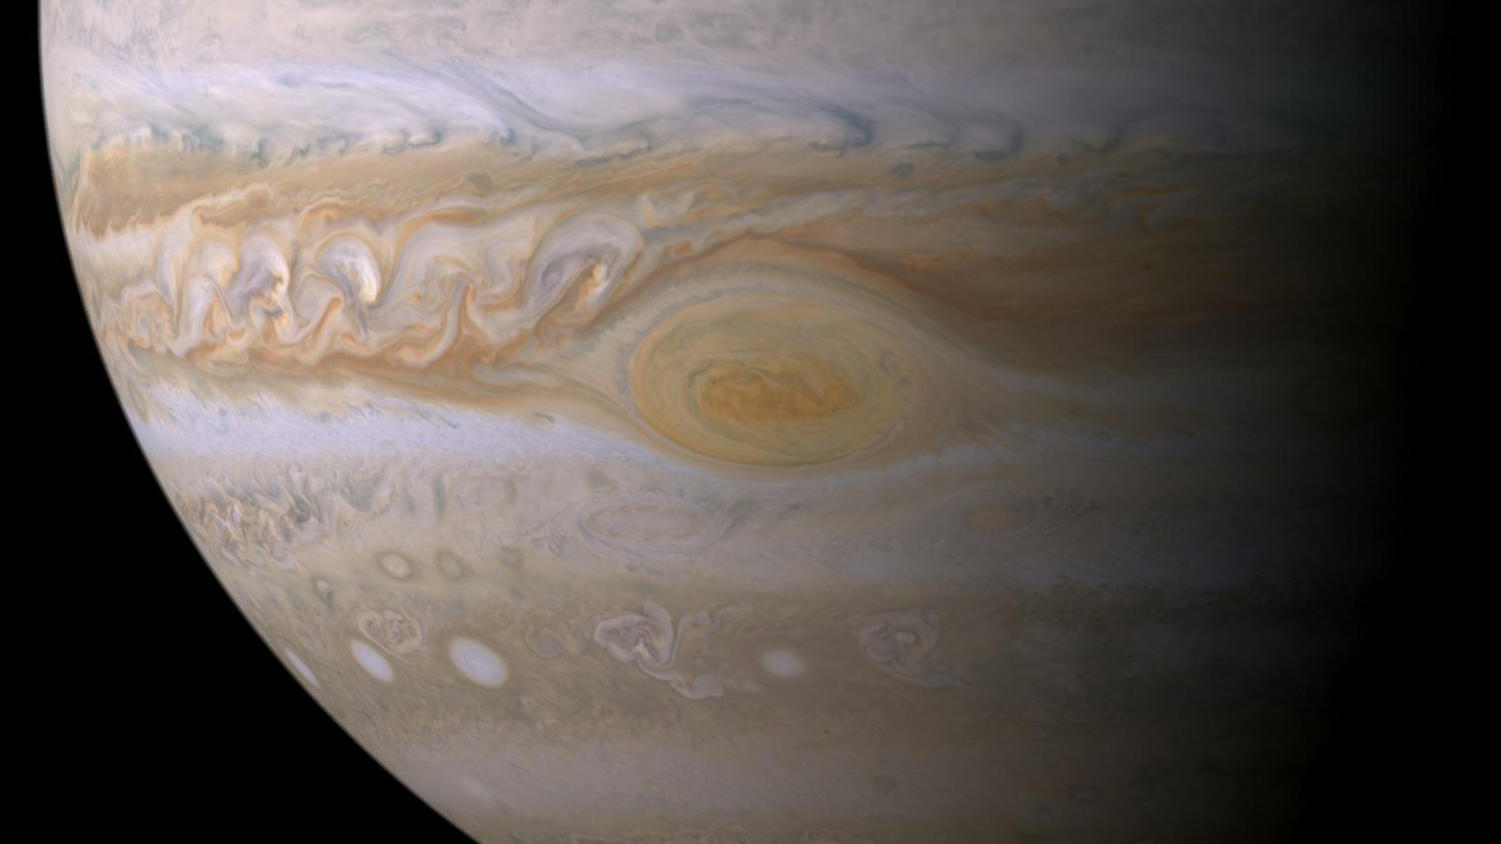 Jupiter's Great Red Spot could potentially disappear in the next 10 to 20 years.